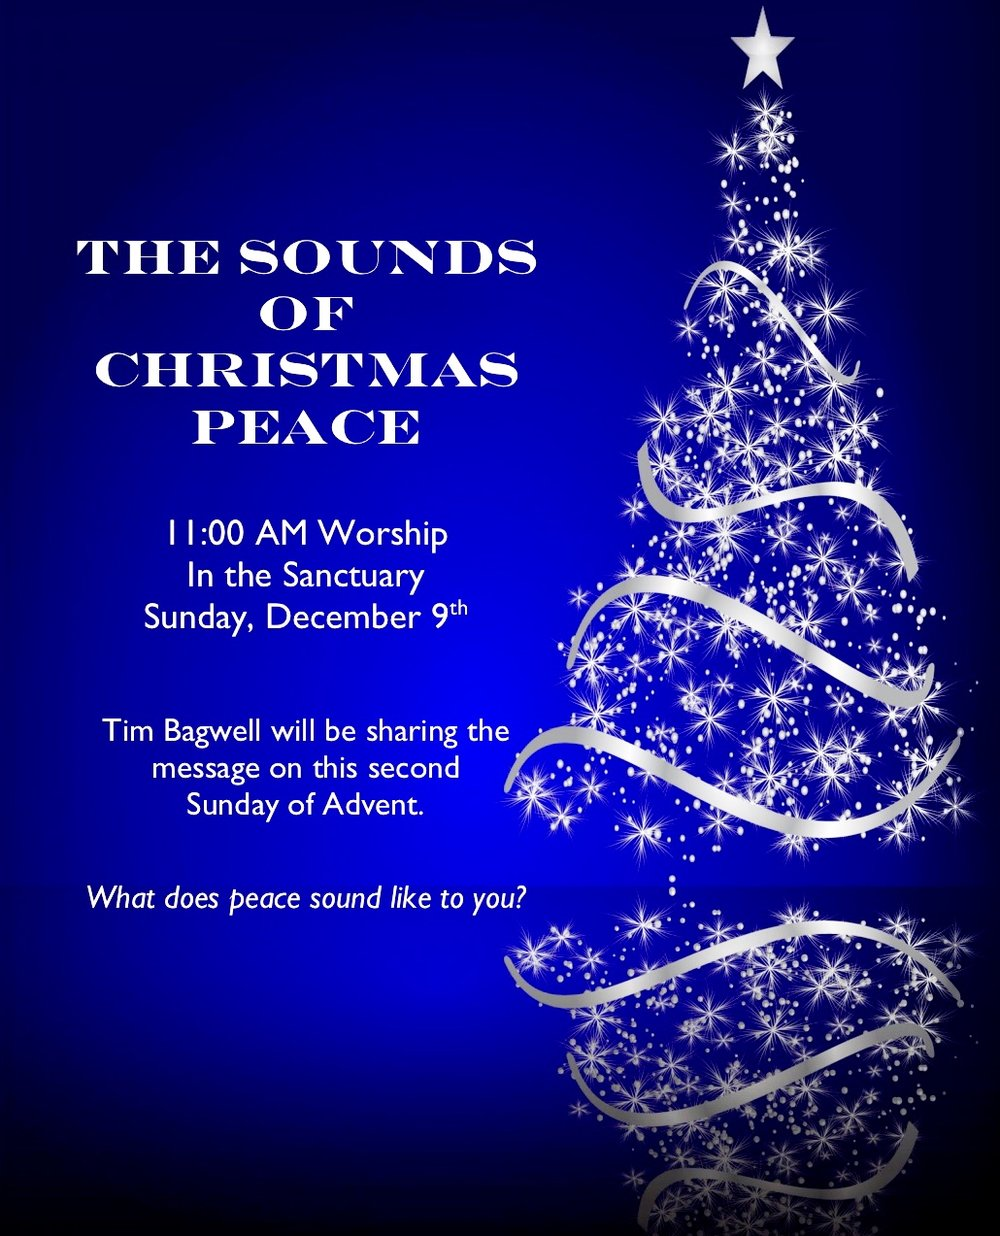 the sounds of christmas peace centenary